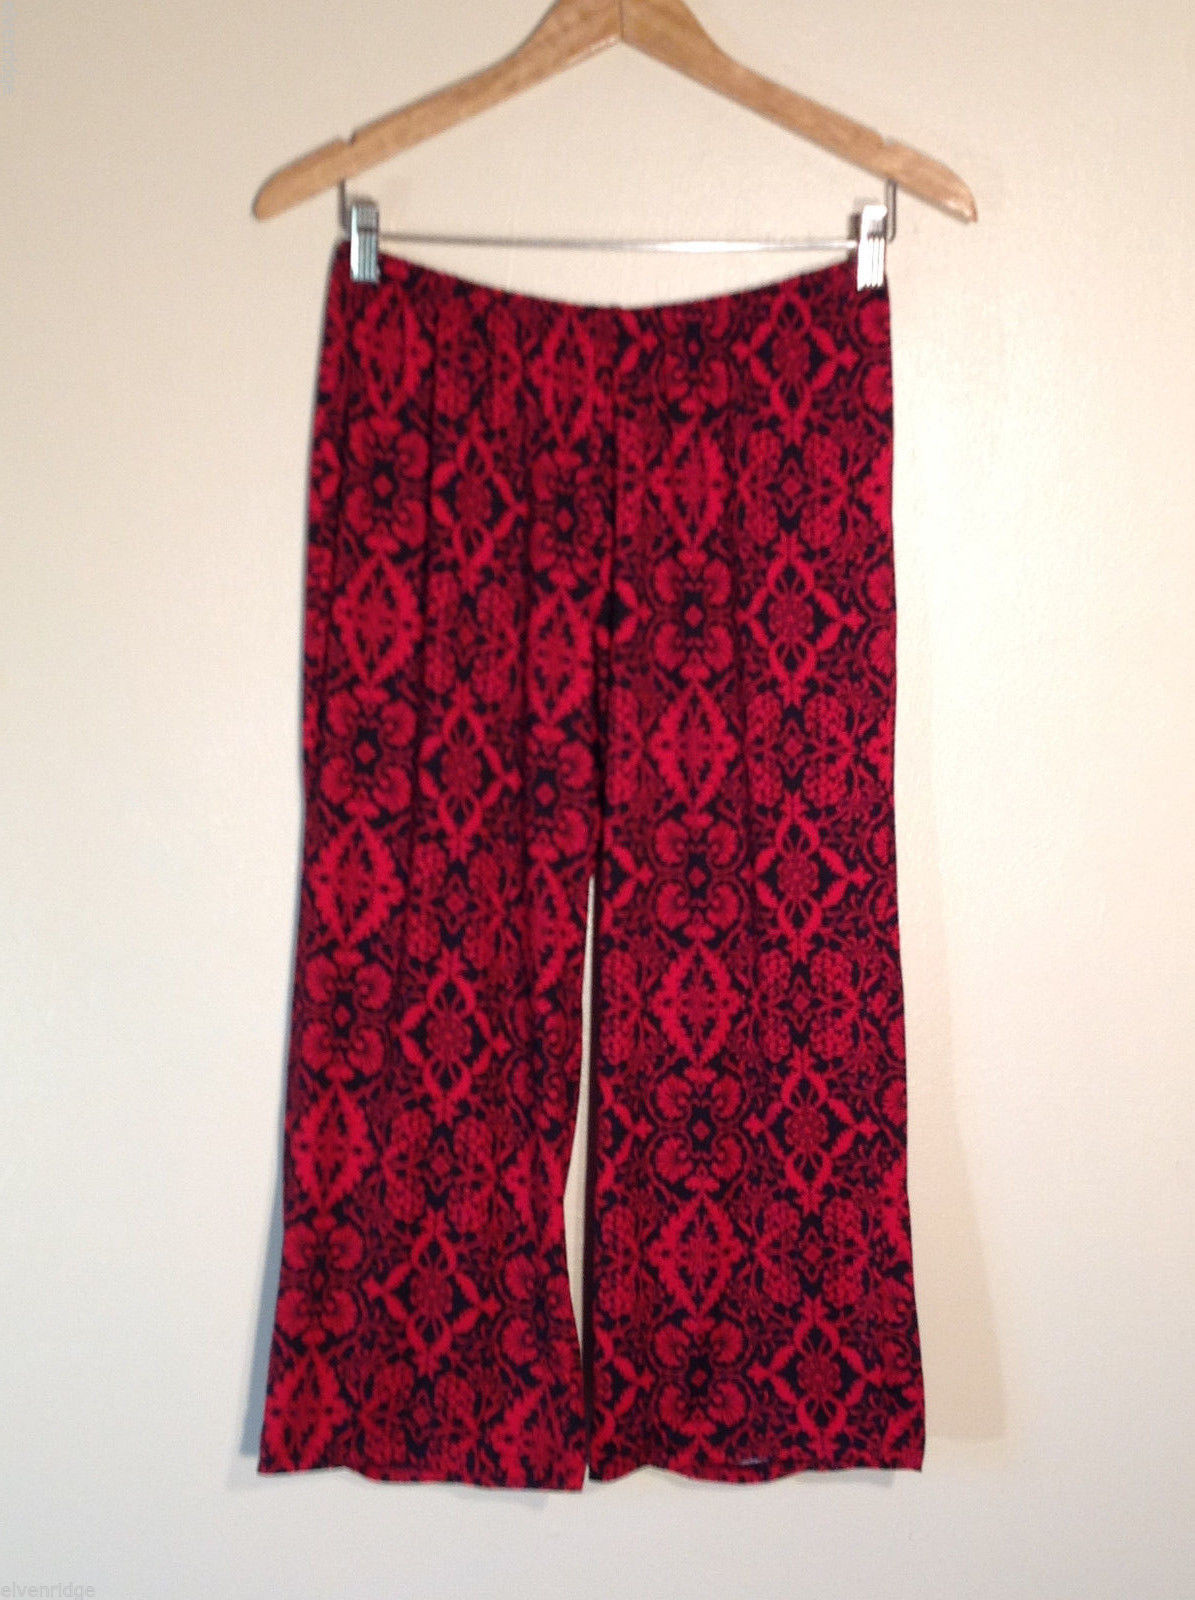 No Tag Women's S Red & Black Floral Capri Pajama Pyjama Bottoms Lounge Pants